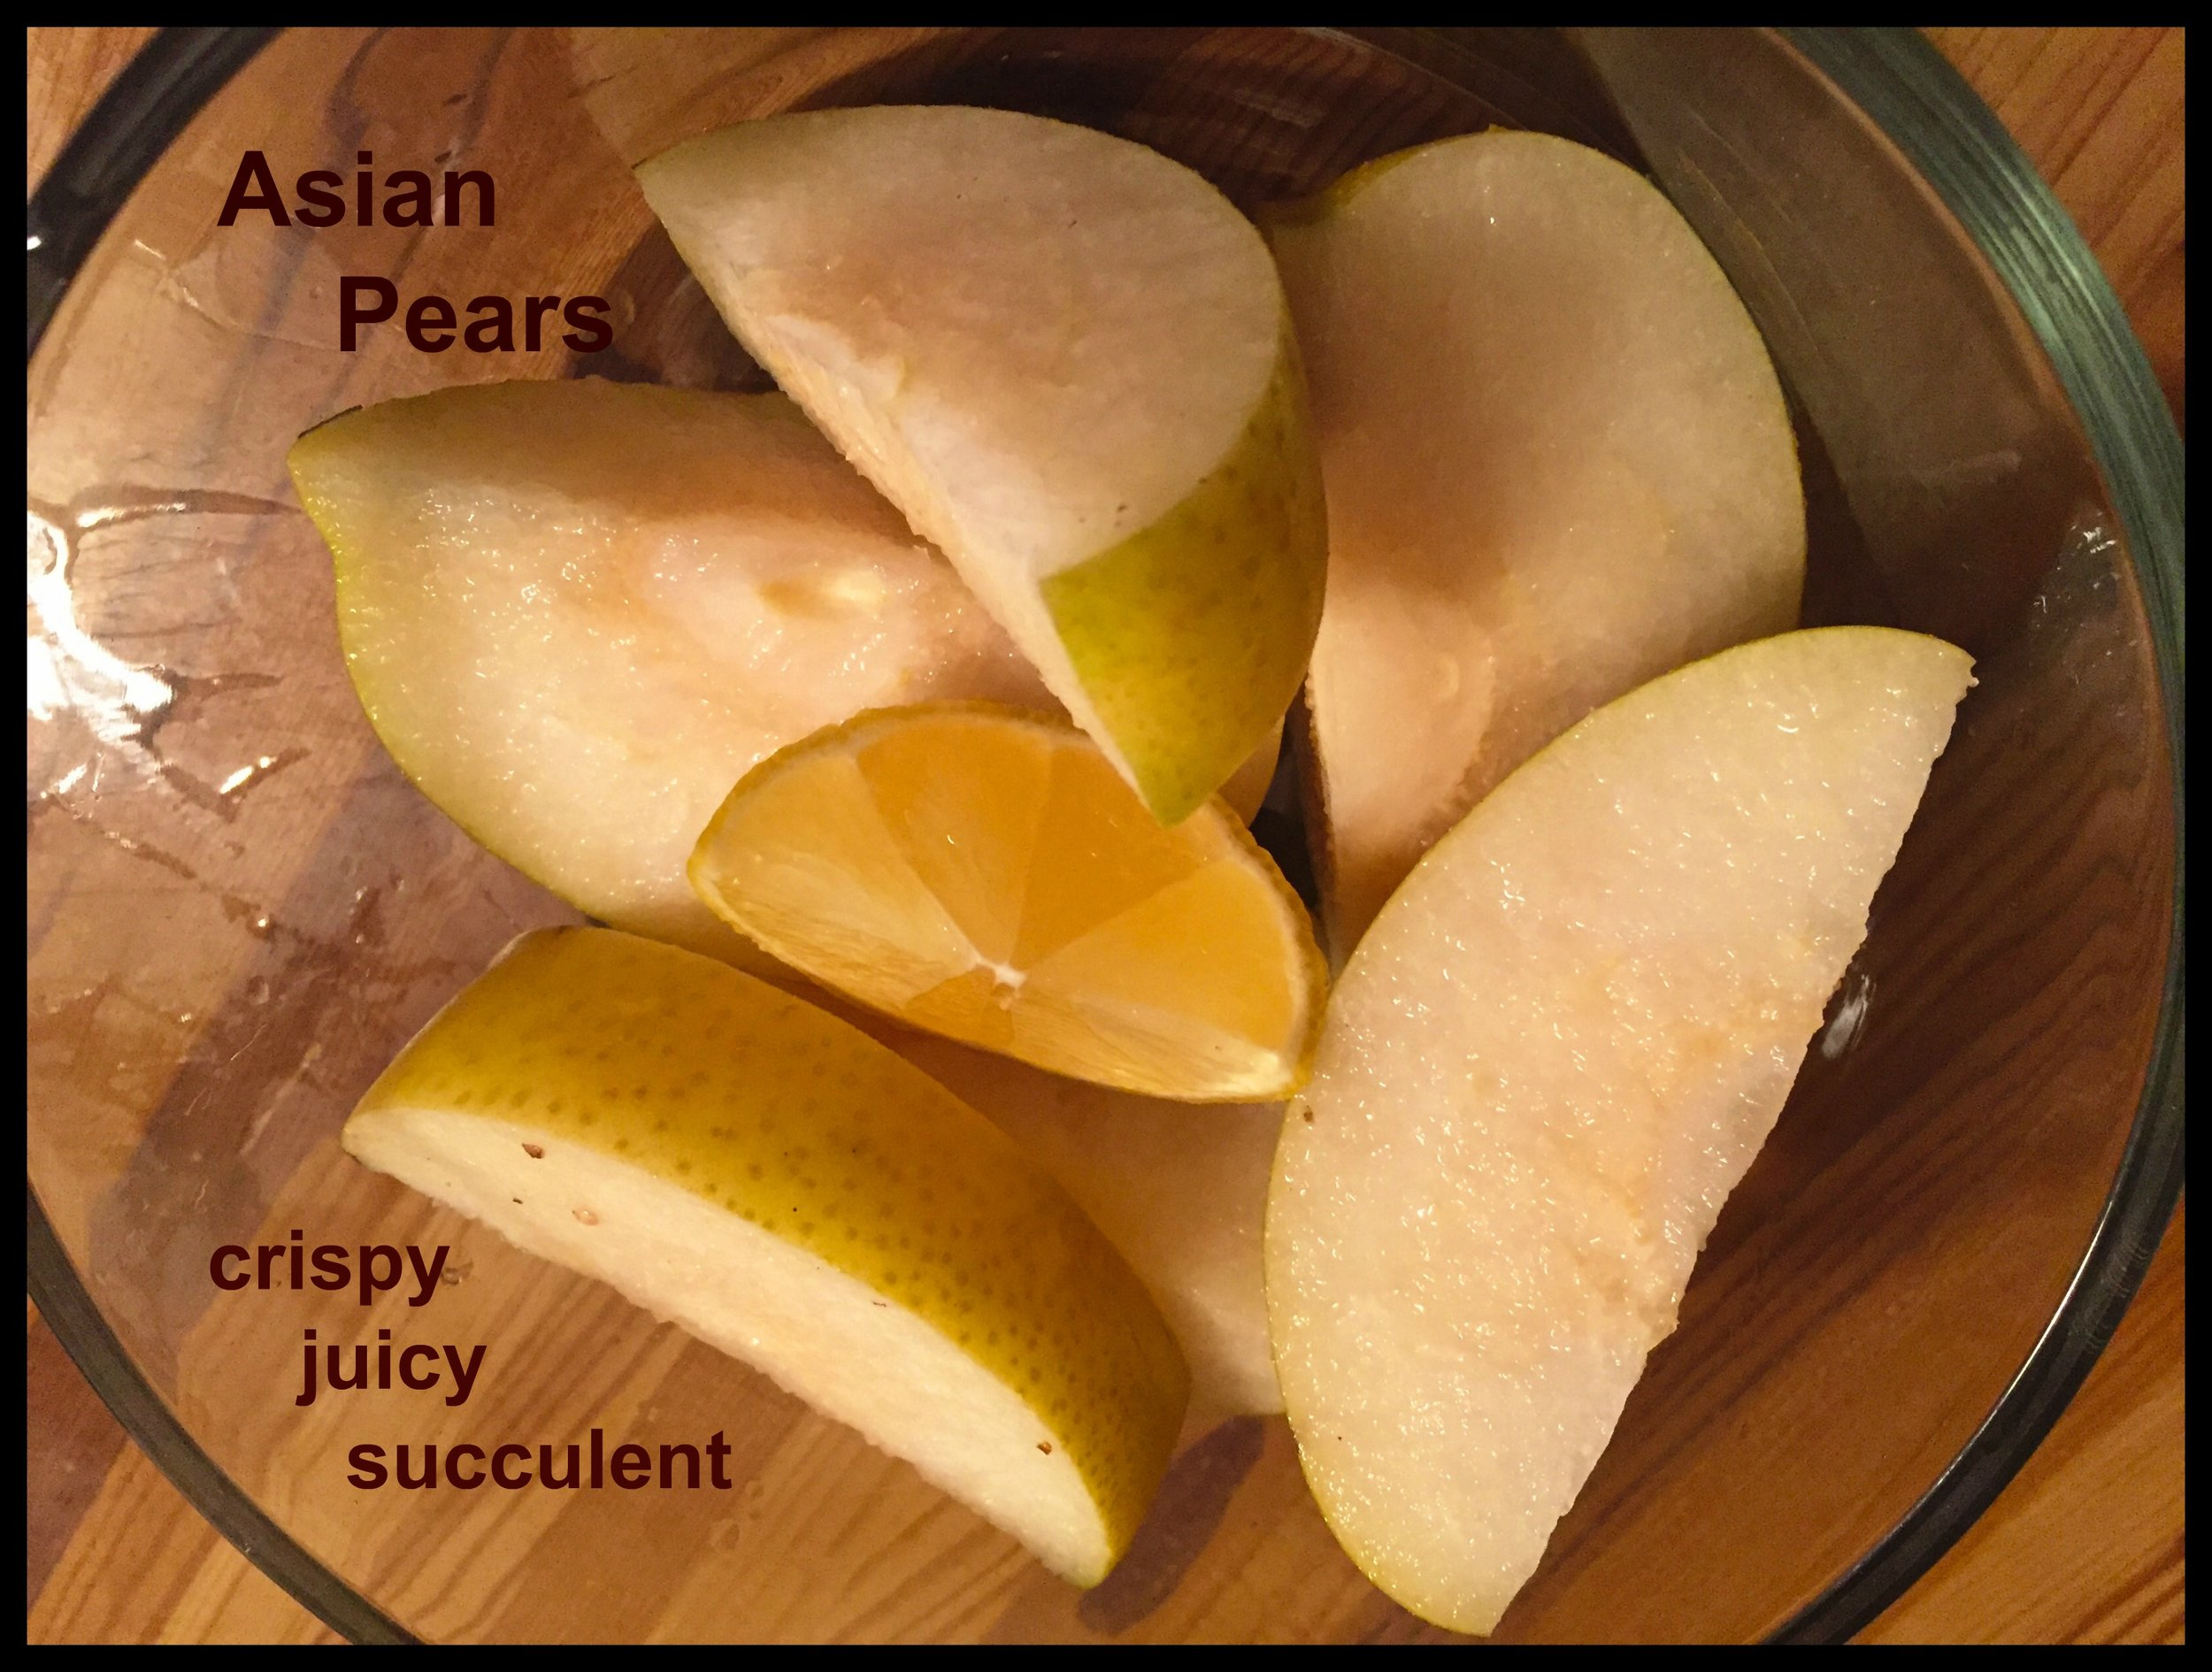 Asian Pear IG with text.jpg